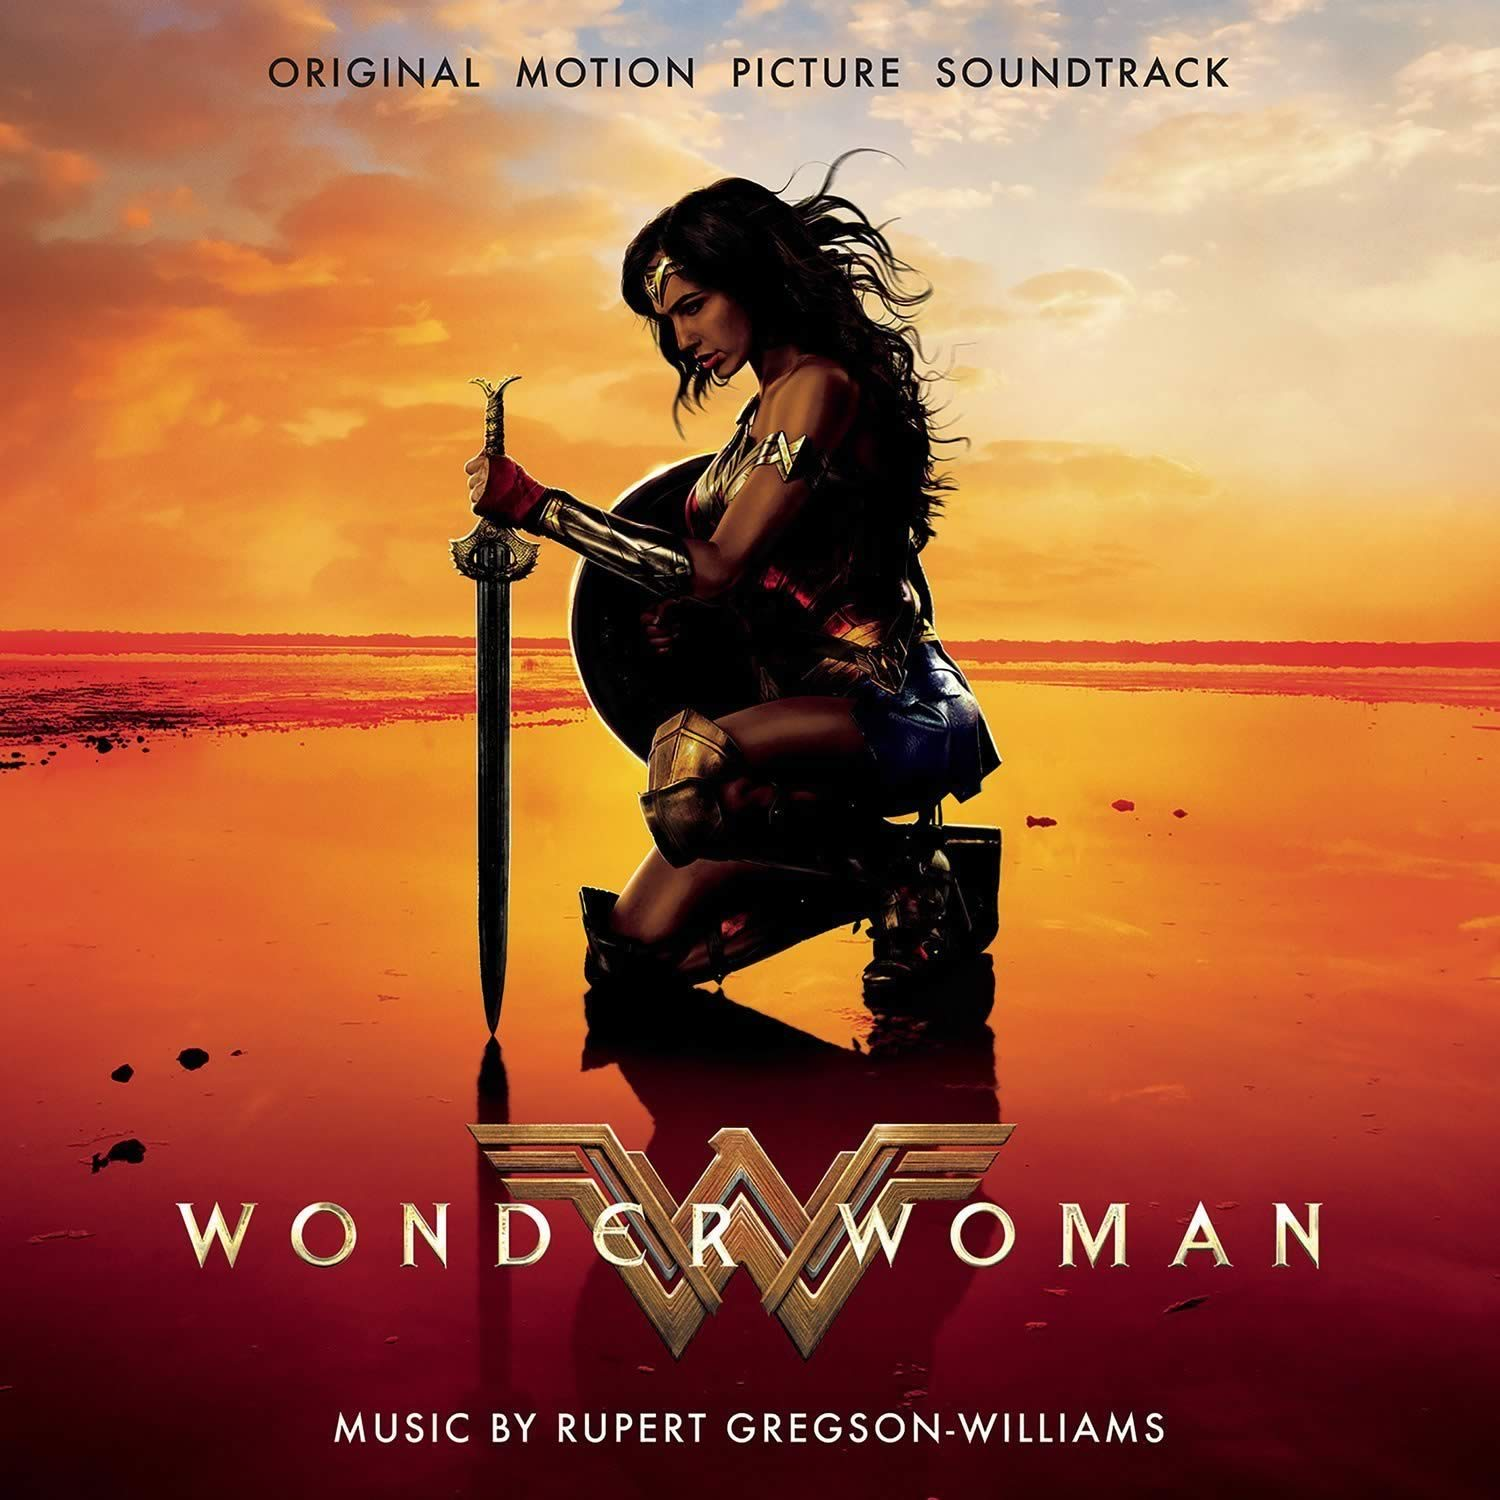 WONDER WOMAN - THE ORIGINAL MOTION PICTURE SOUNDTRACK (AUDIO CD)